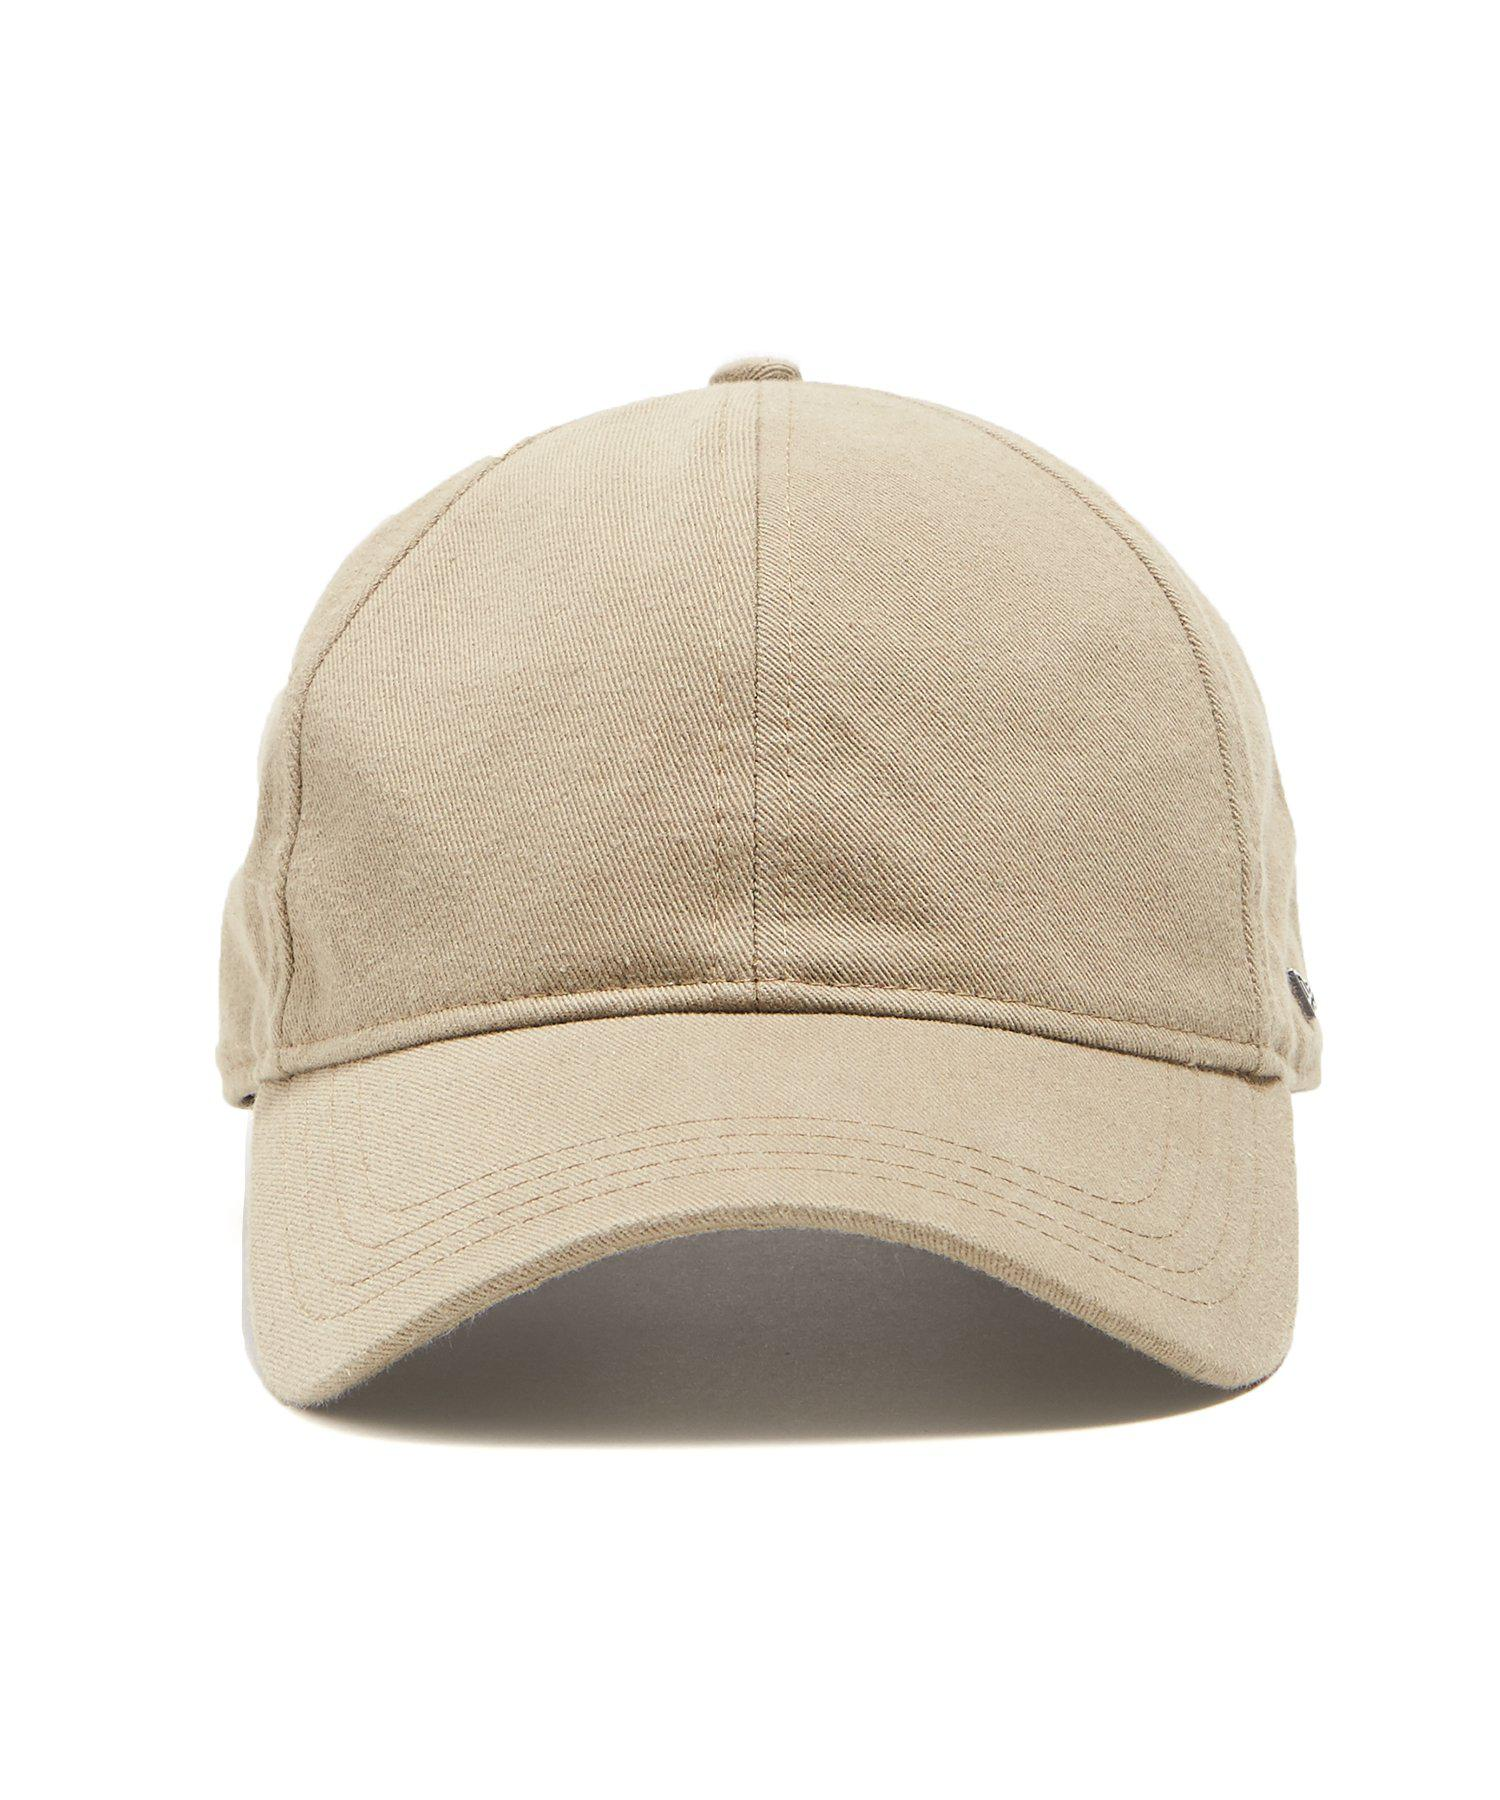 5b74702c NEW ERA HATS Dad Hat In Khaki Selvedge Chino in Natural for Men - Lyst